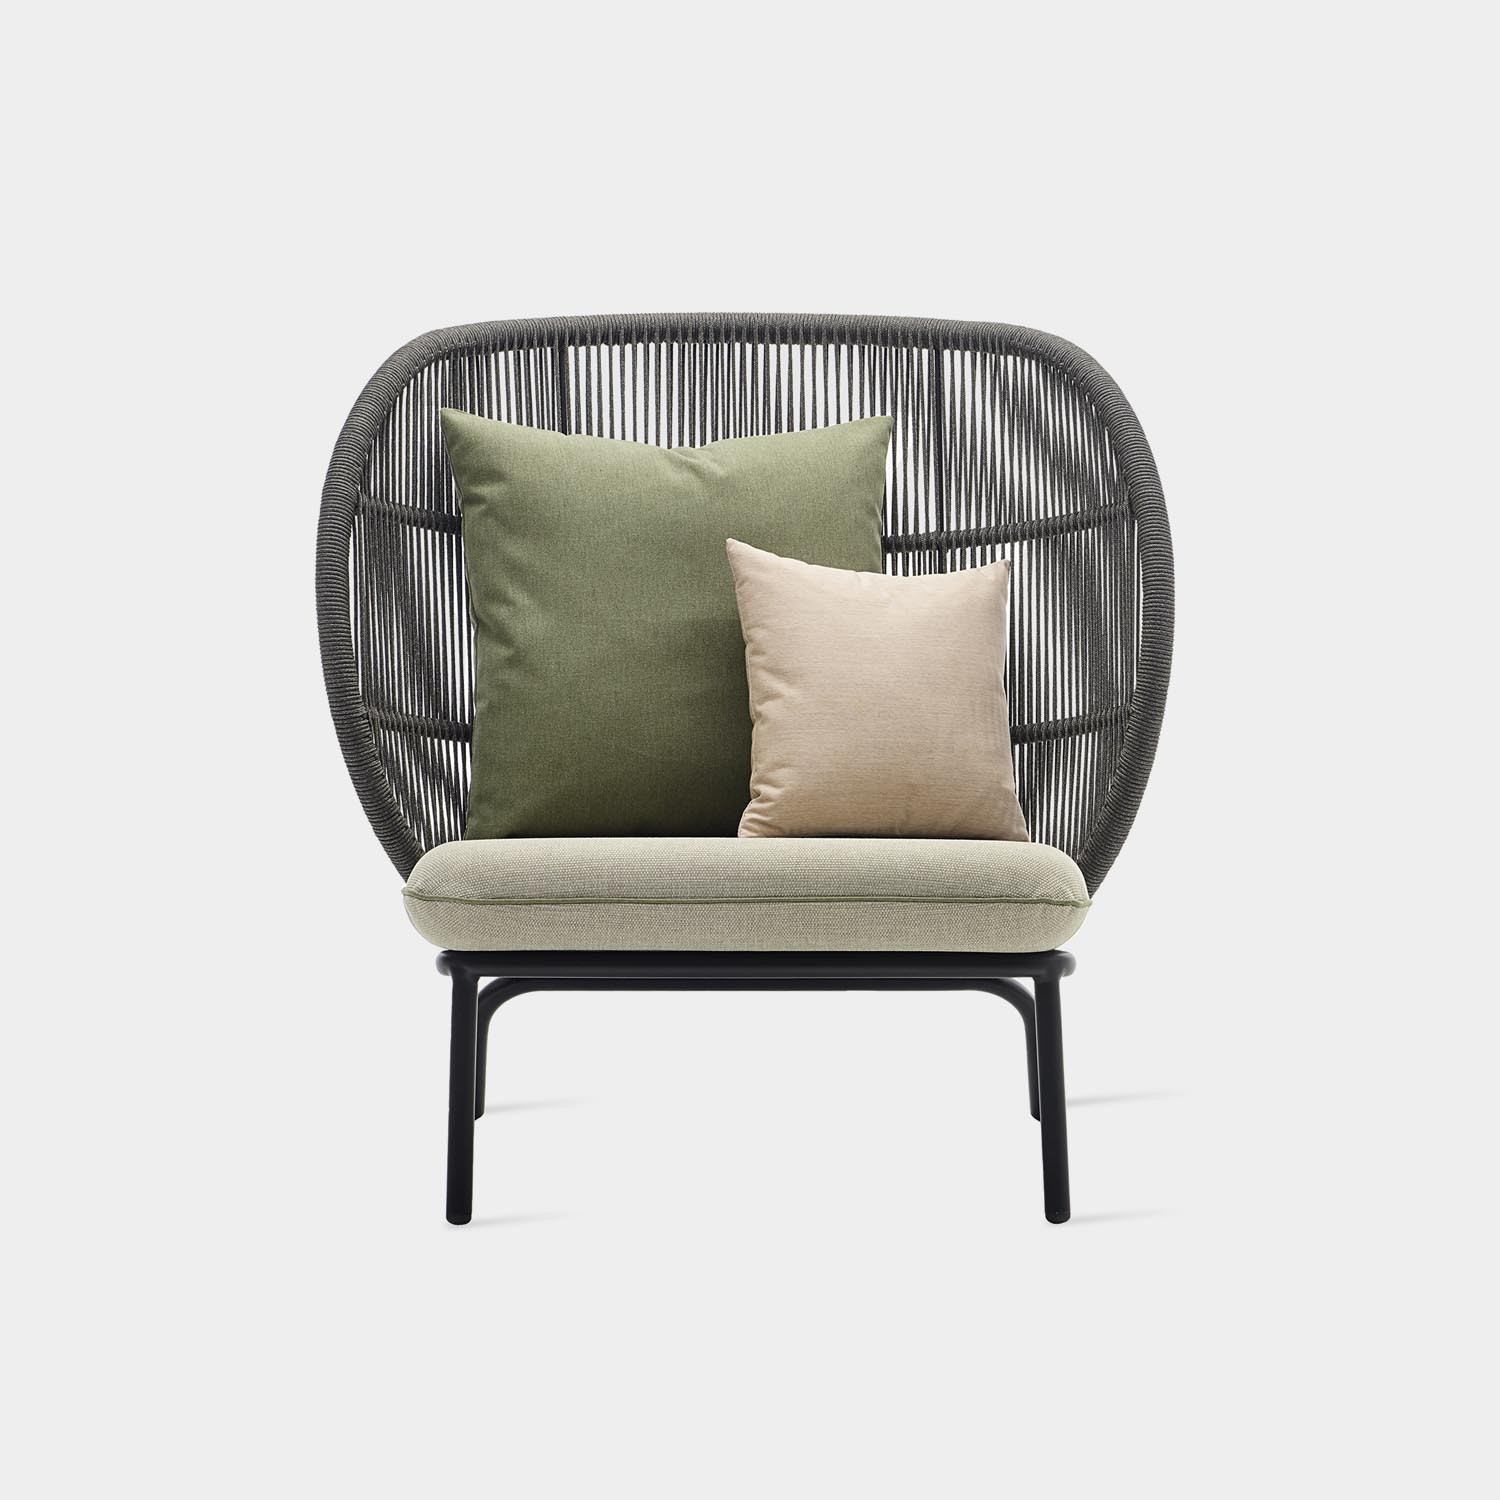 Kodo Cocoon with Deco Cushions